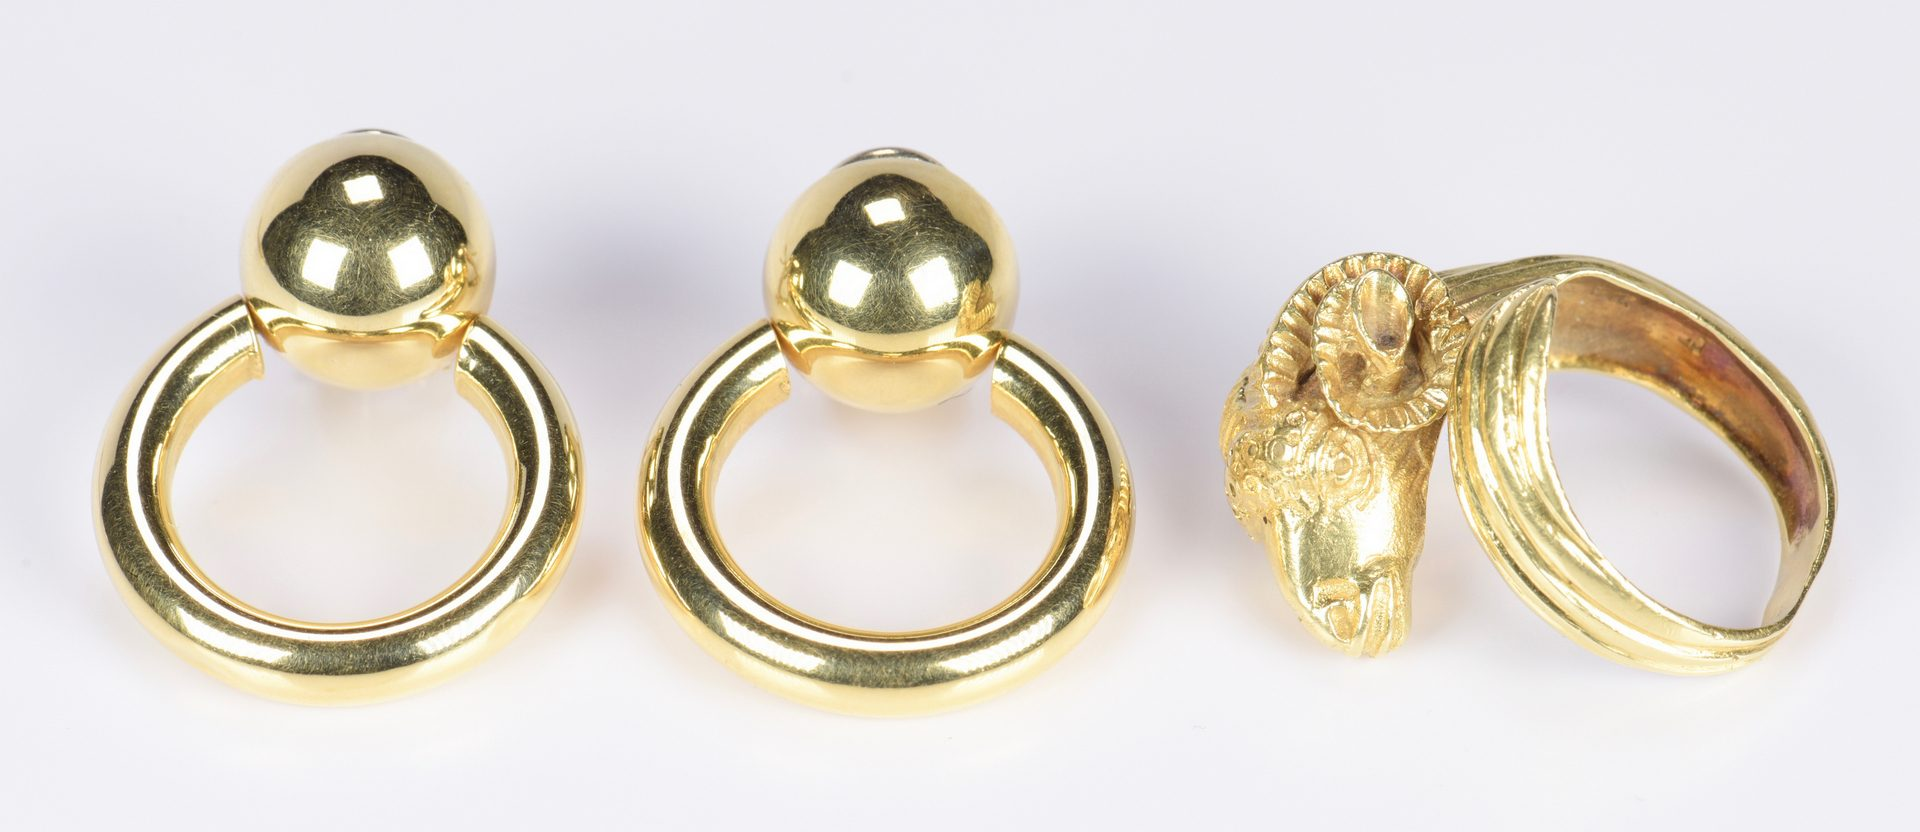 Lot 792: 4 Items of 18K Gold Jewelry, Incl Ram's Head Ring